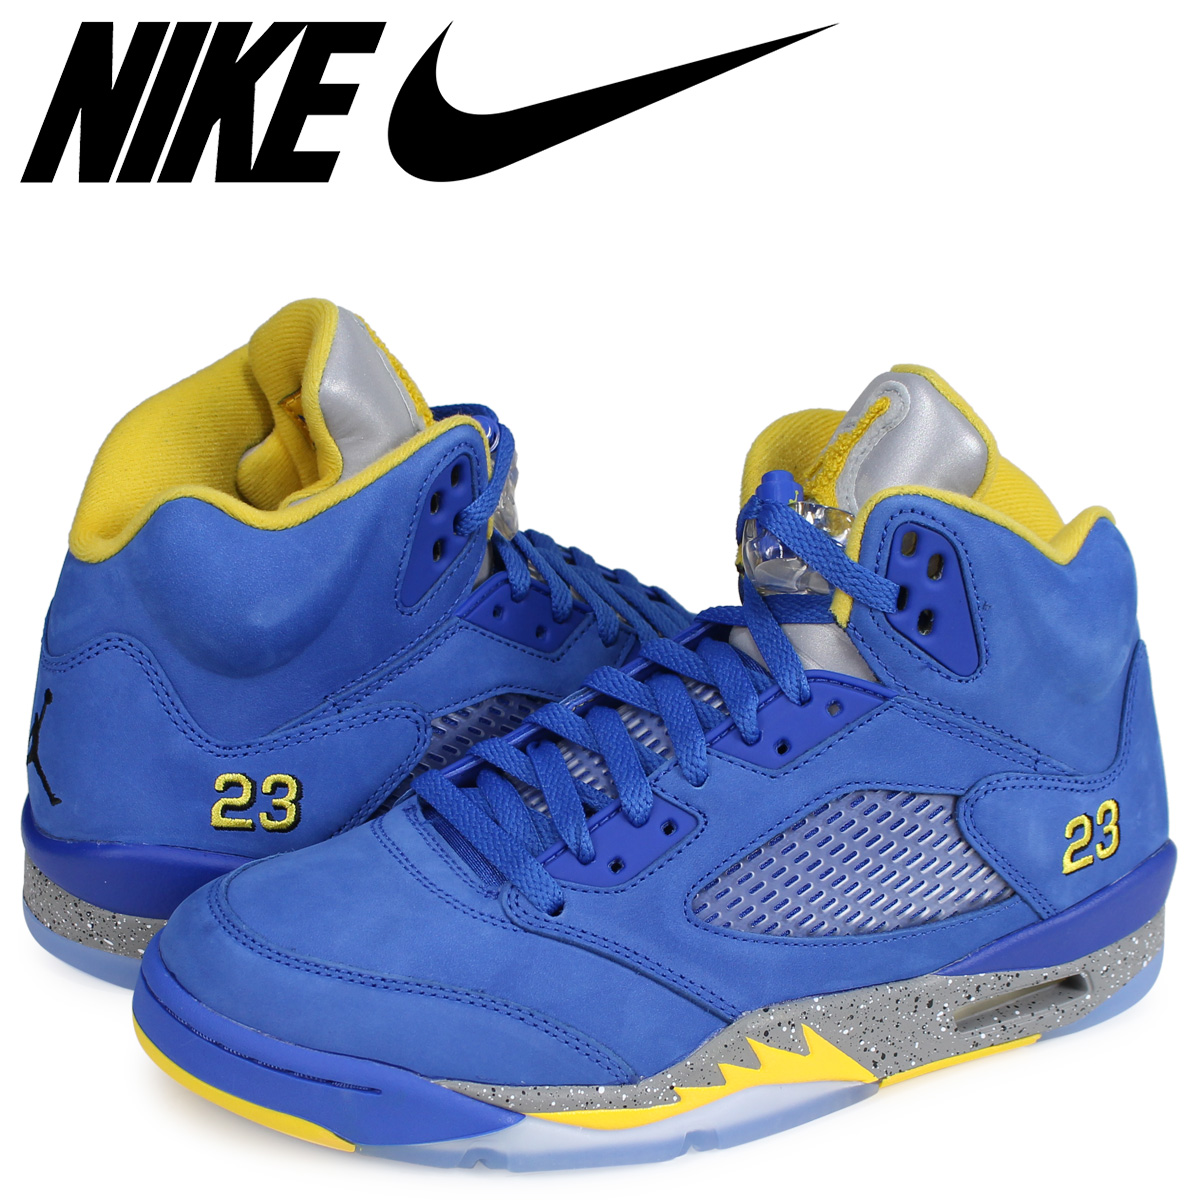 the best attitude a5c53 fce80 NIKE AIR JORDAN 5 RETRO JSP LANEY Nike Air Jordan 5 nostalgic sneakers men  blue CD2720-400